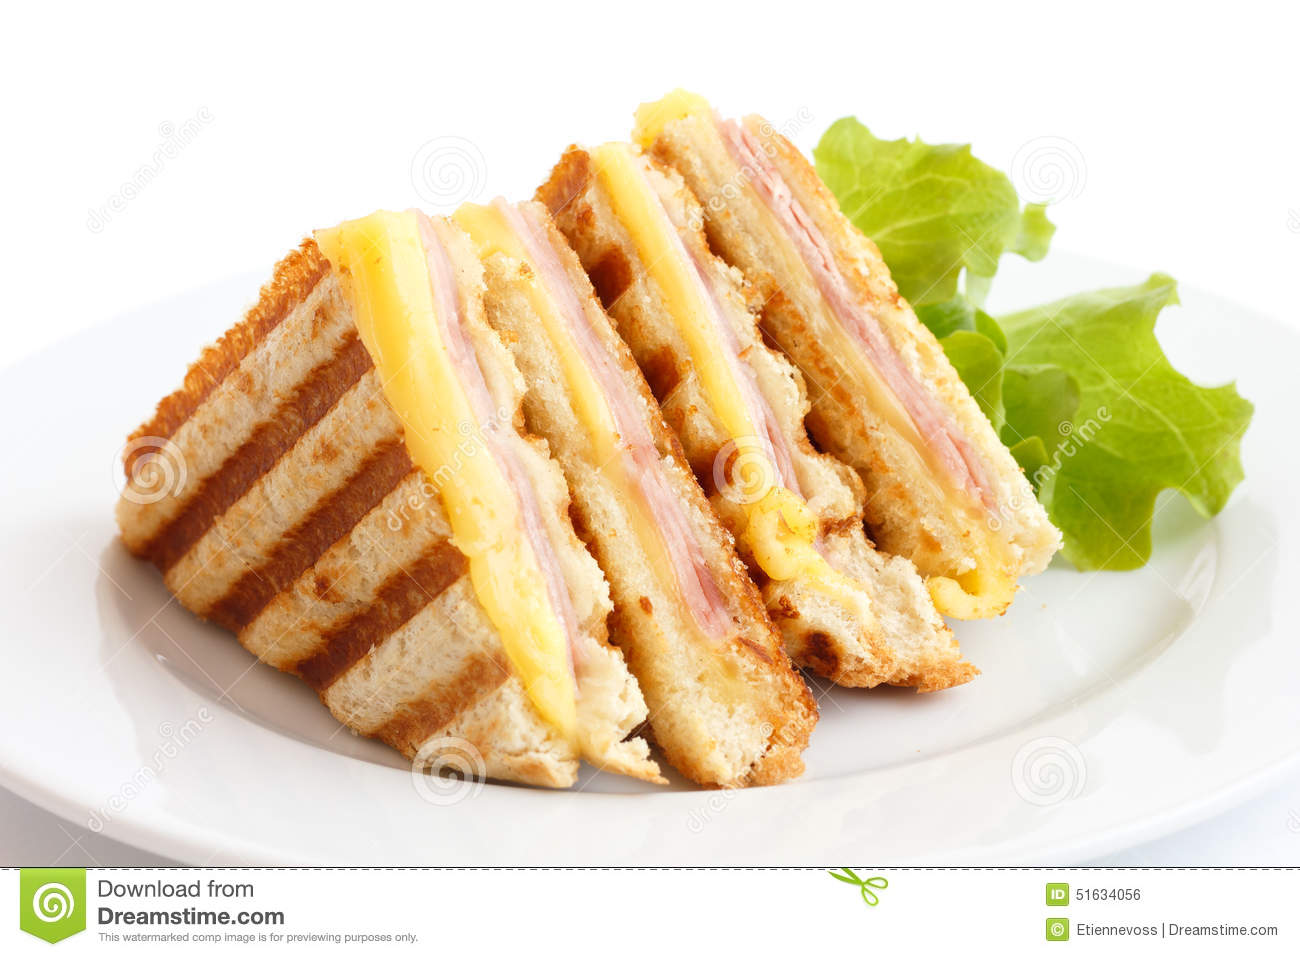 Toasted Ham And Cheese Panini. Stock Photo - Image: 51634056